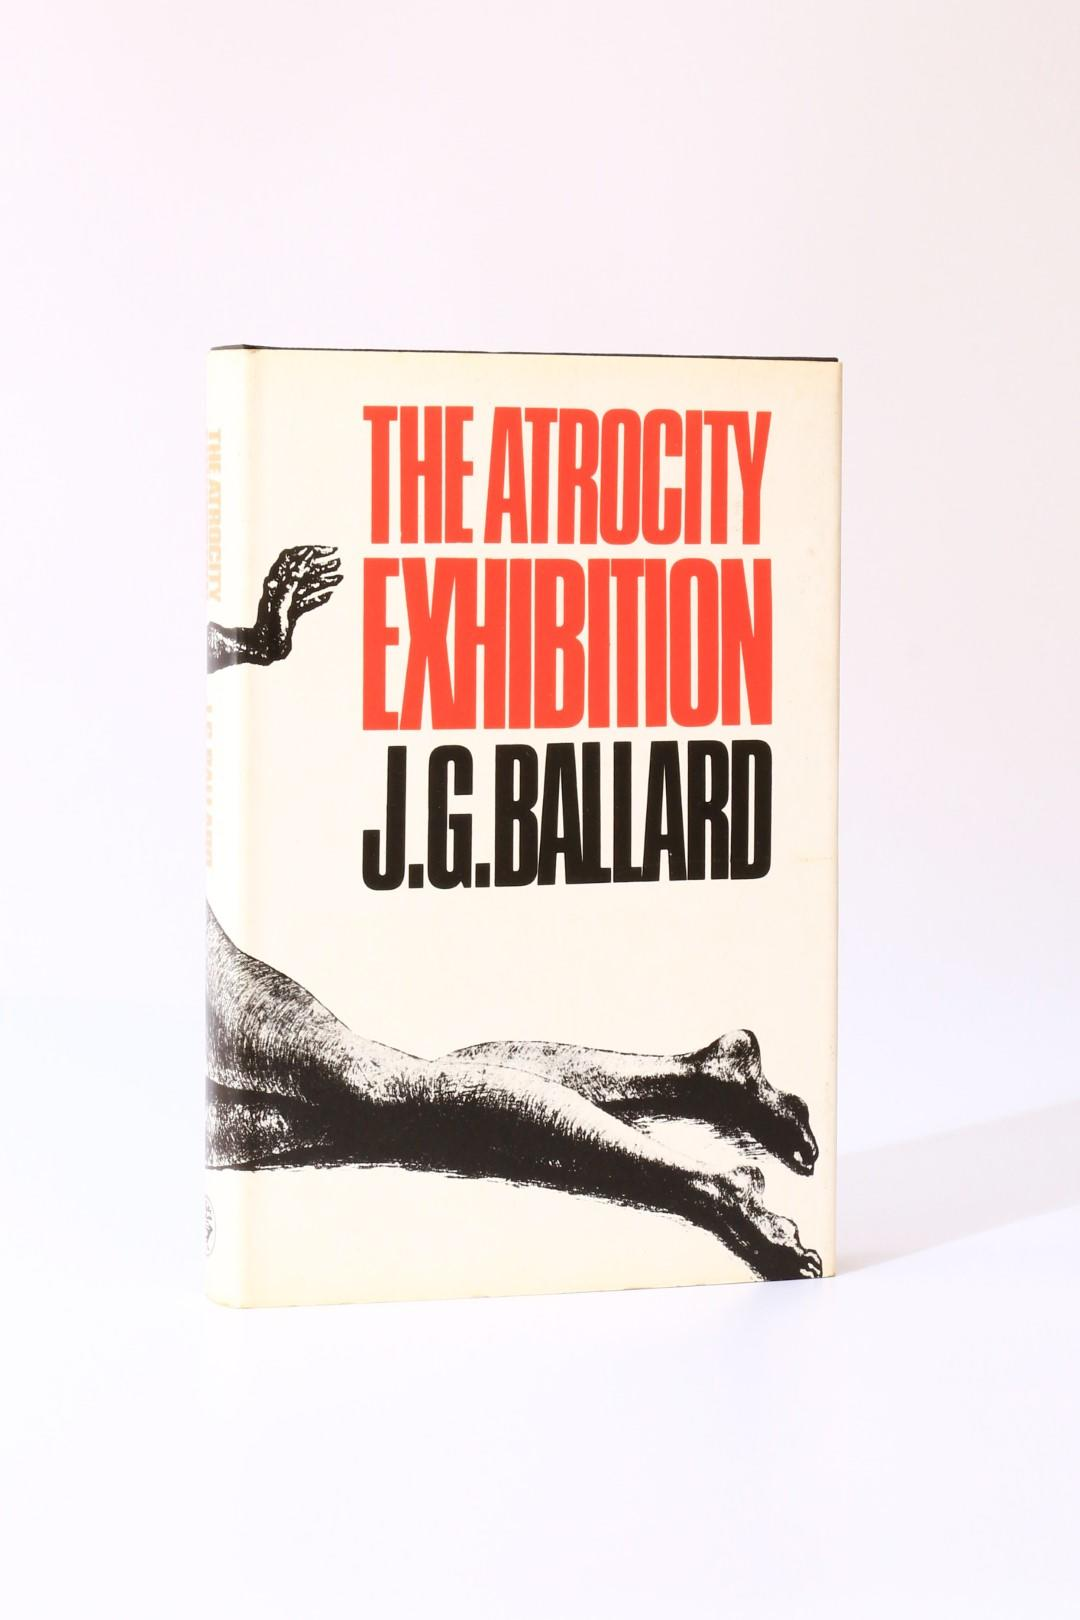 J.G. Ballard - The Atrocity Exhibition - Jonathan Cape, 1970, First Edition.